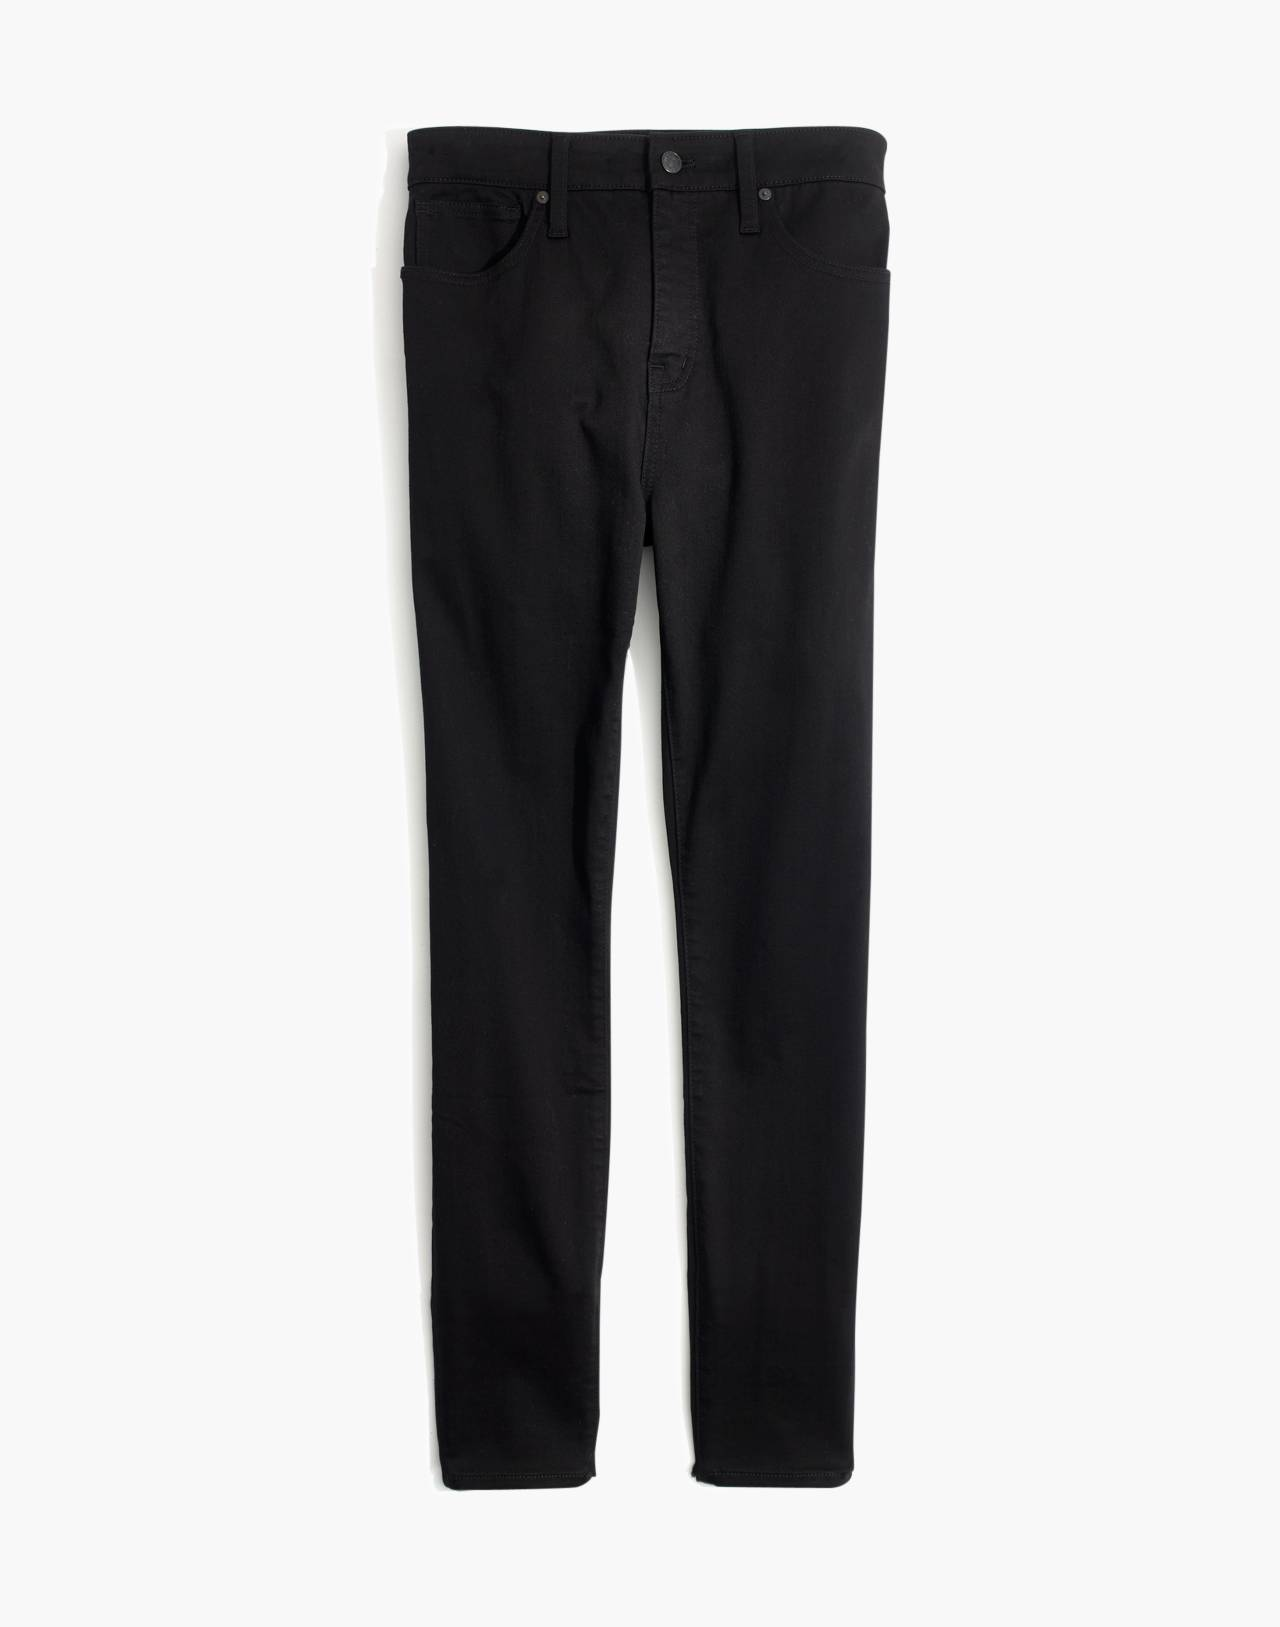 Petite Curvy High-Rise Skinny Jeans in Carbondale Wash in carbondale wash image 4